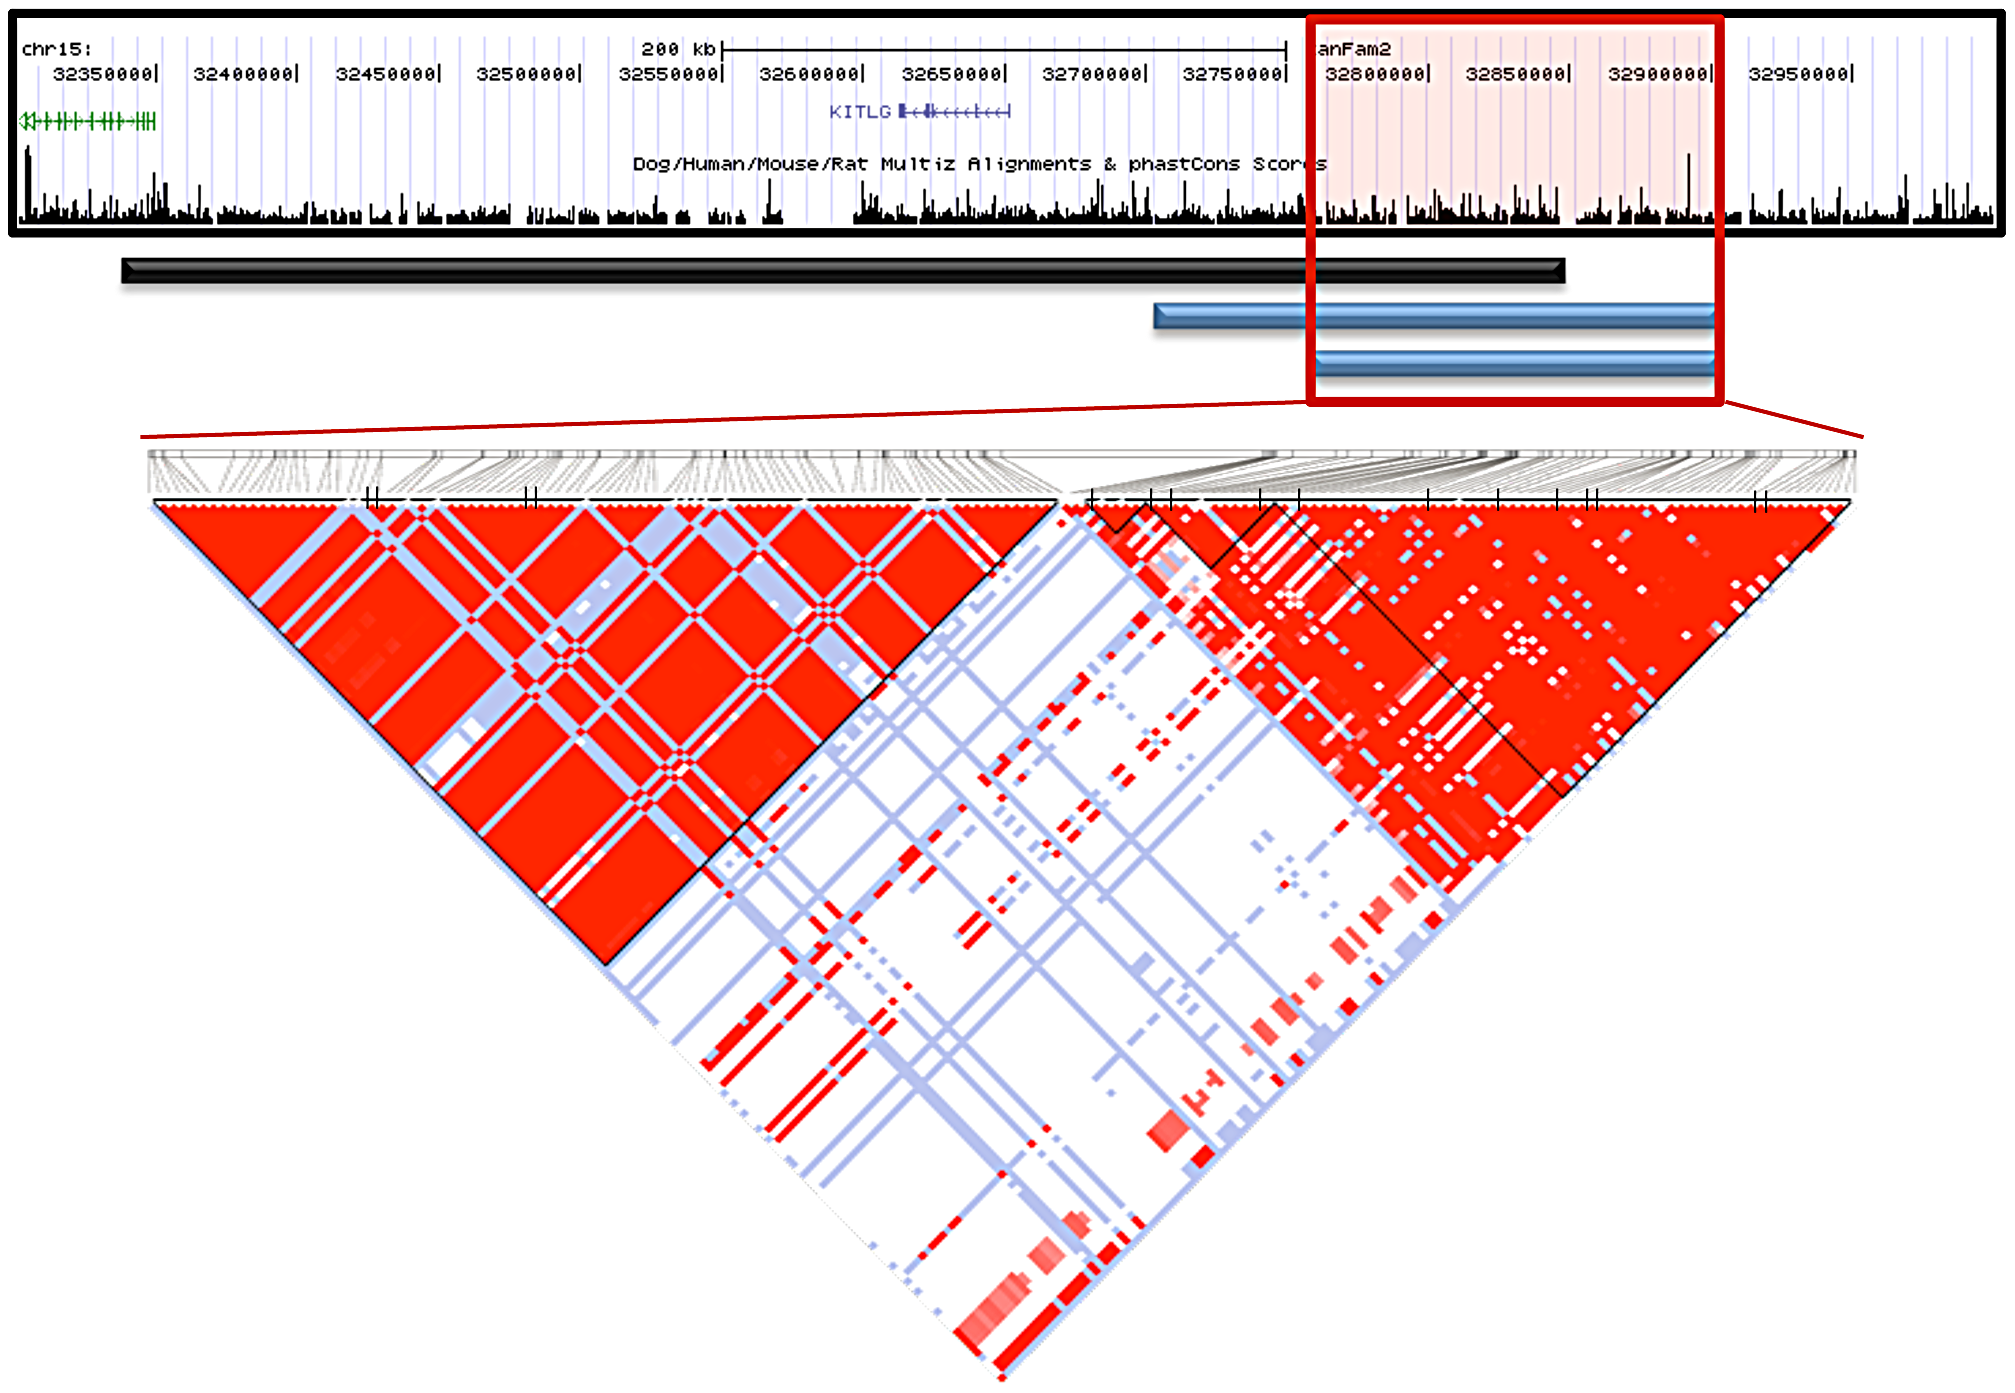 Interbreed haplotype analysis refines the SCCD locus to 144.9 Kb.